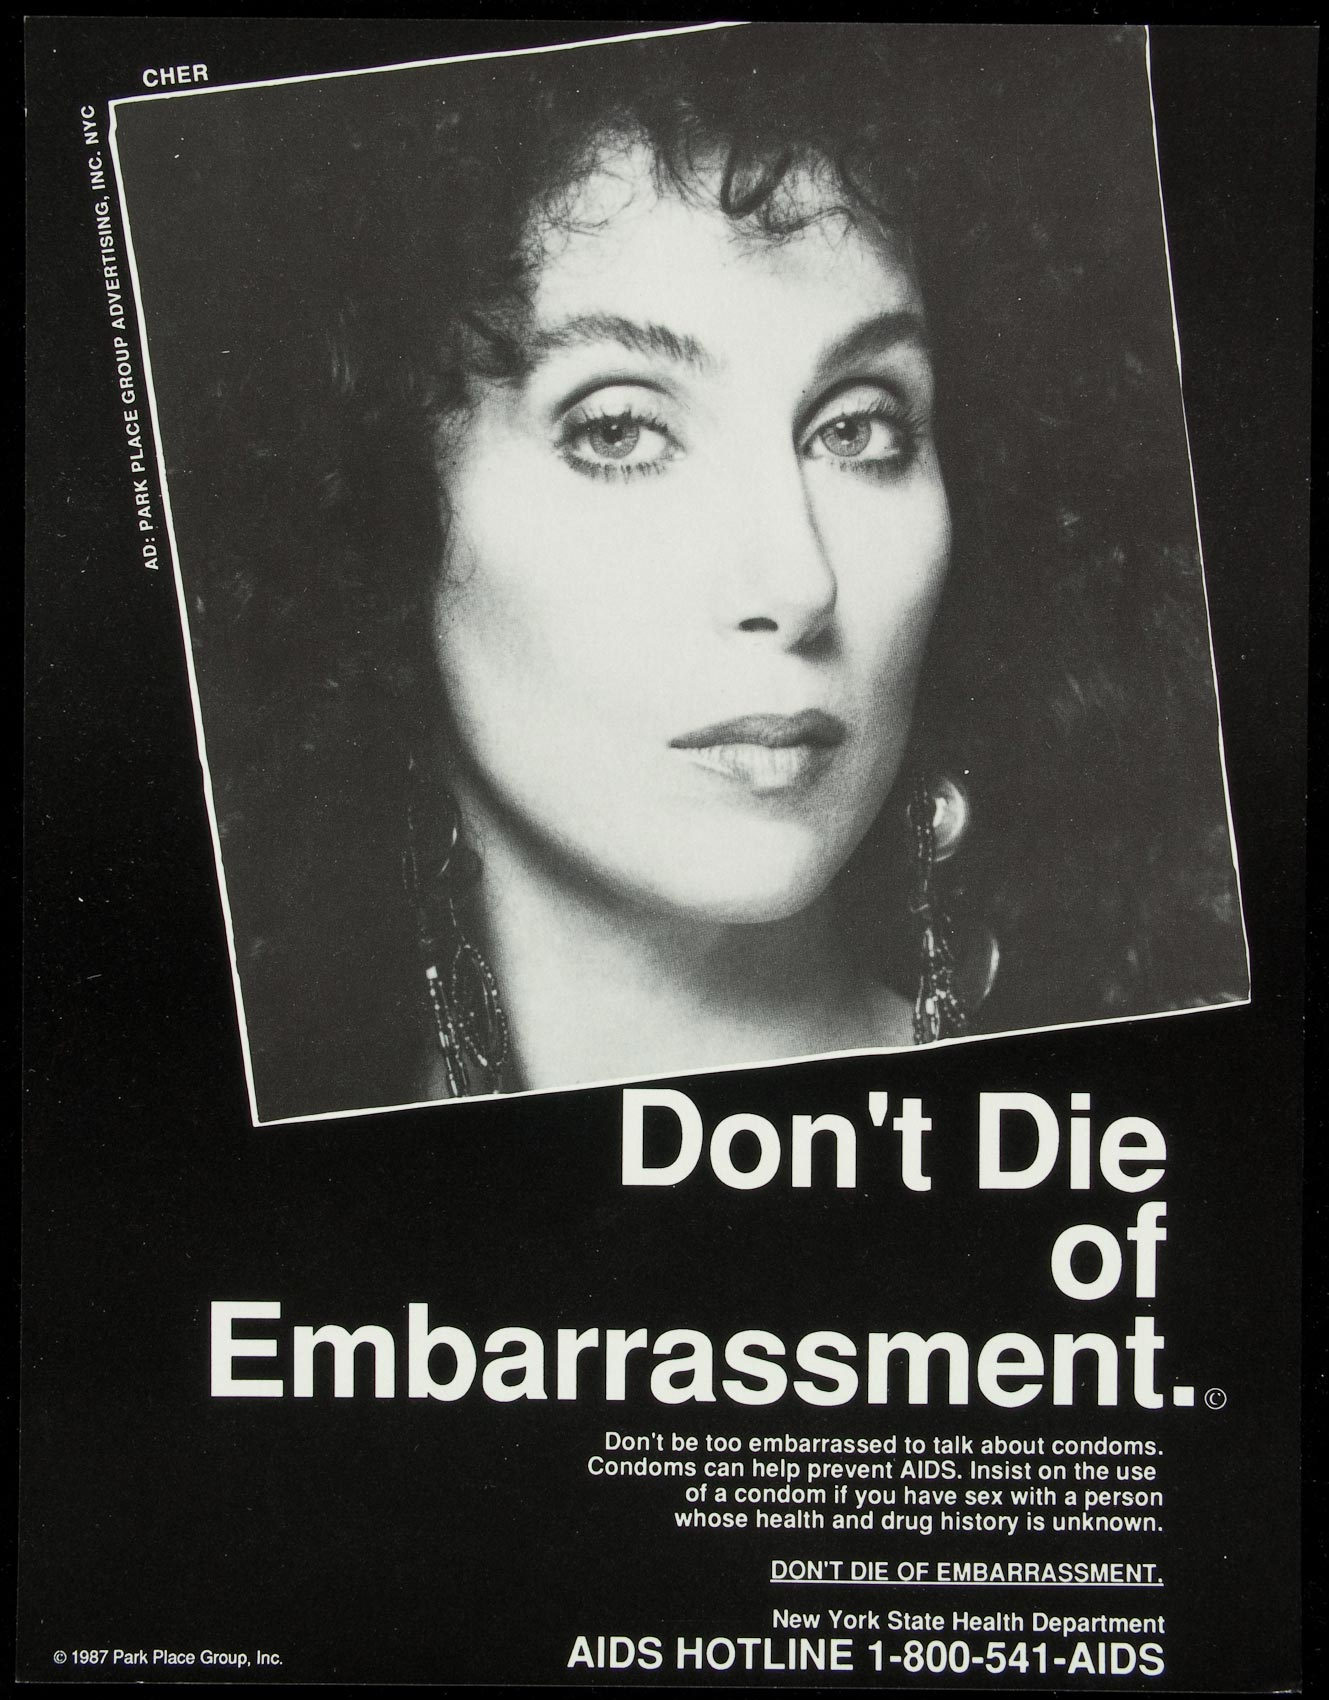 A 1987 poster featuring Cher, made by the New York State Department of Health.